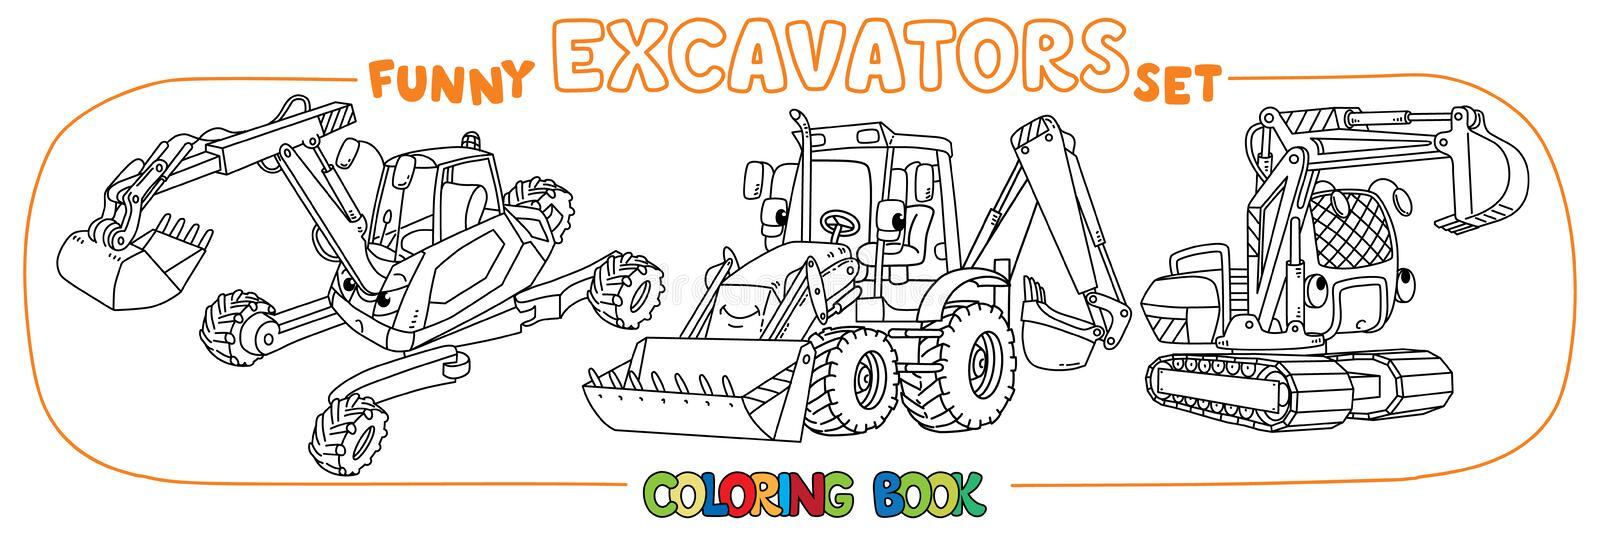 Funny constuction excavator set. Coloring book. Excavator coloring book set for kids. Small funny vector cute cars with eyes and mouth. Children vector royalty free illustration